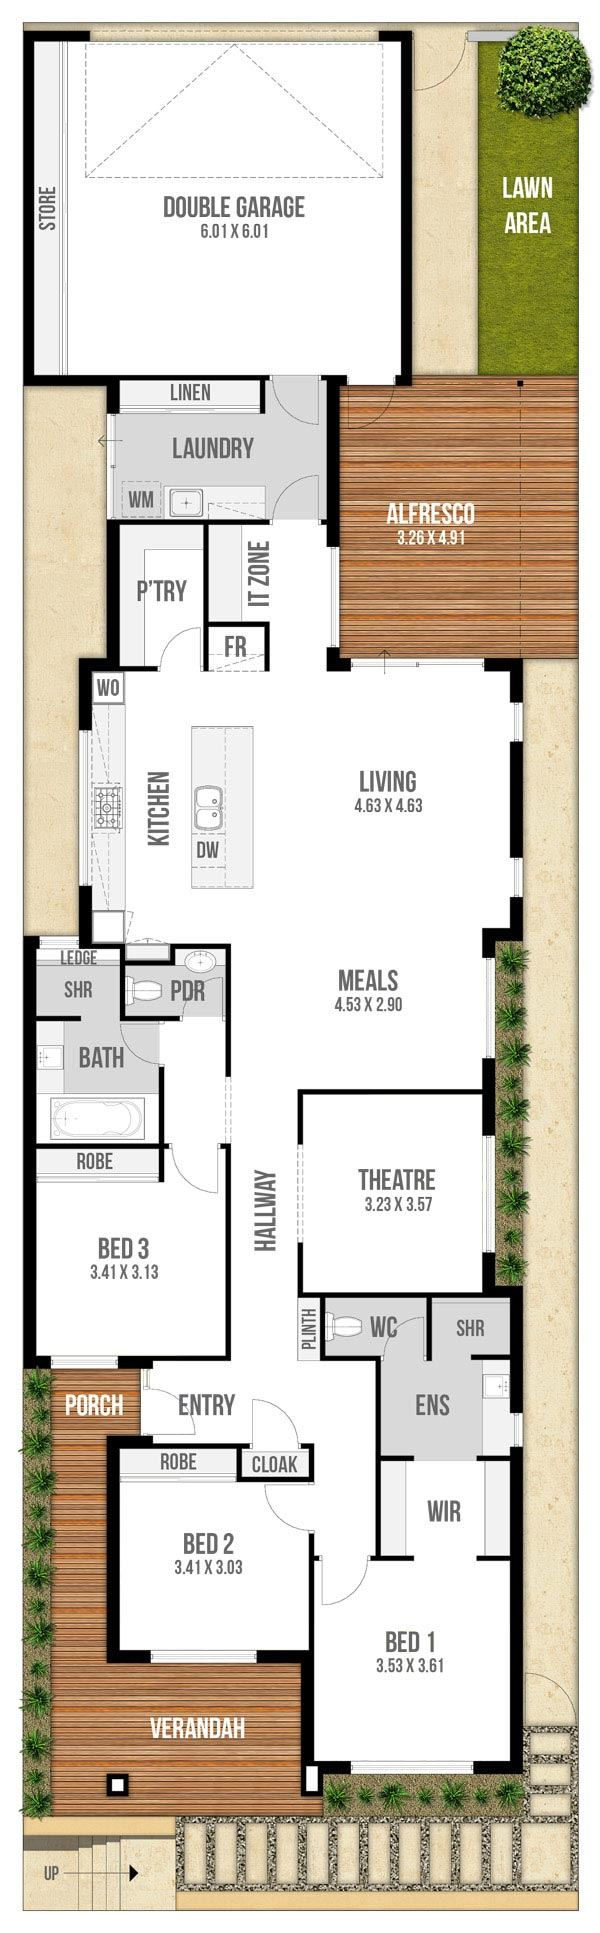 Floor plan friday narrow block with garage rear lane access for Narrow lot homes single storey